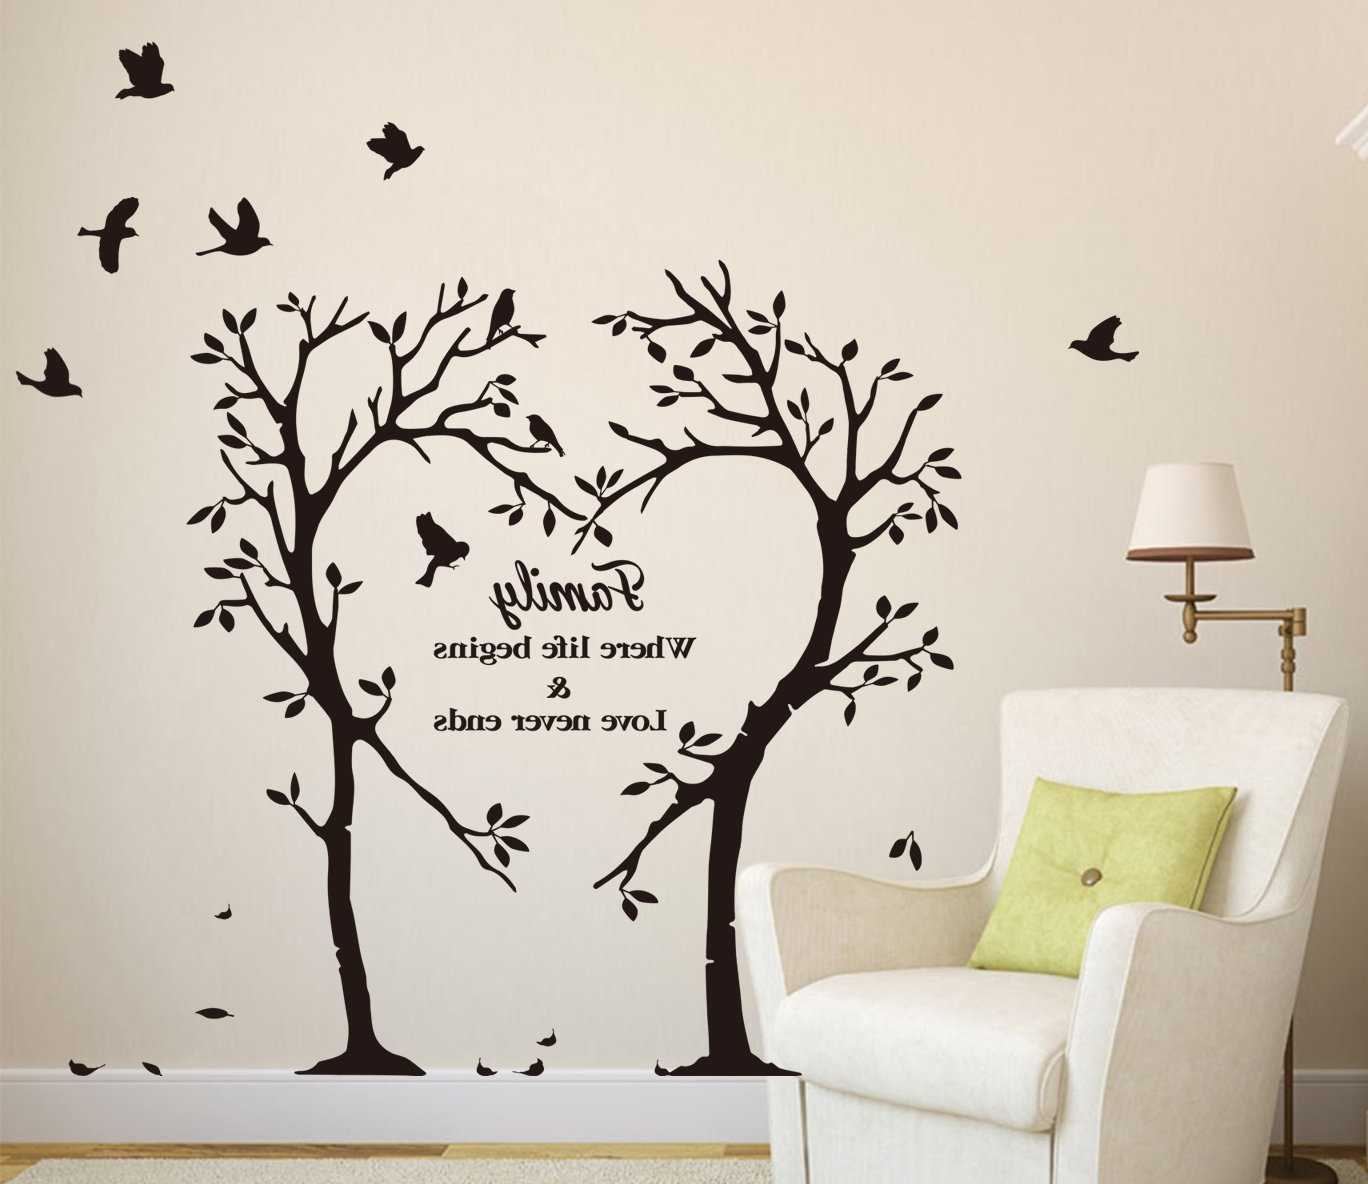 Most Popular Family Tree Wall Art Pertaining To Large Family Inspirational Love Tree Wall Art Sticker, Wall Sticker (View 8 of 15)